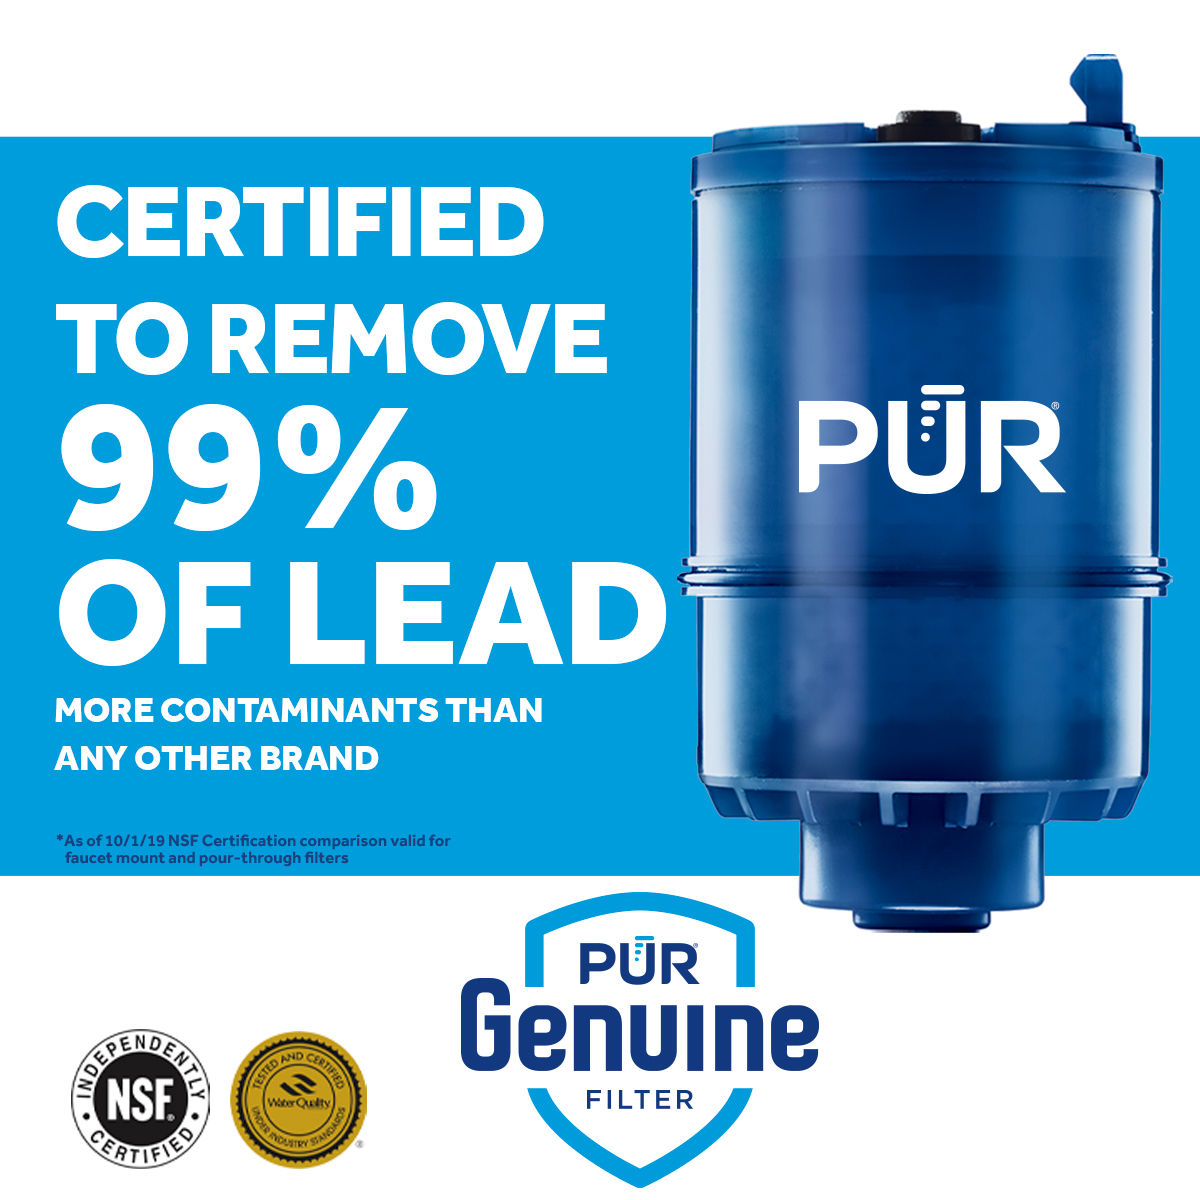 pur advanced faucet mount mineralclear replacement water filter 2 pack